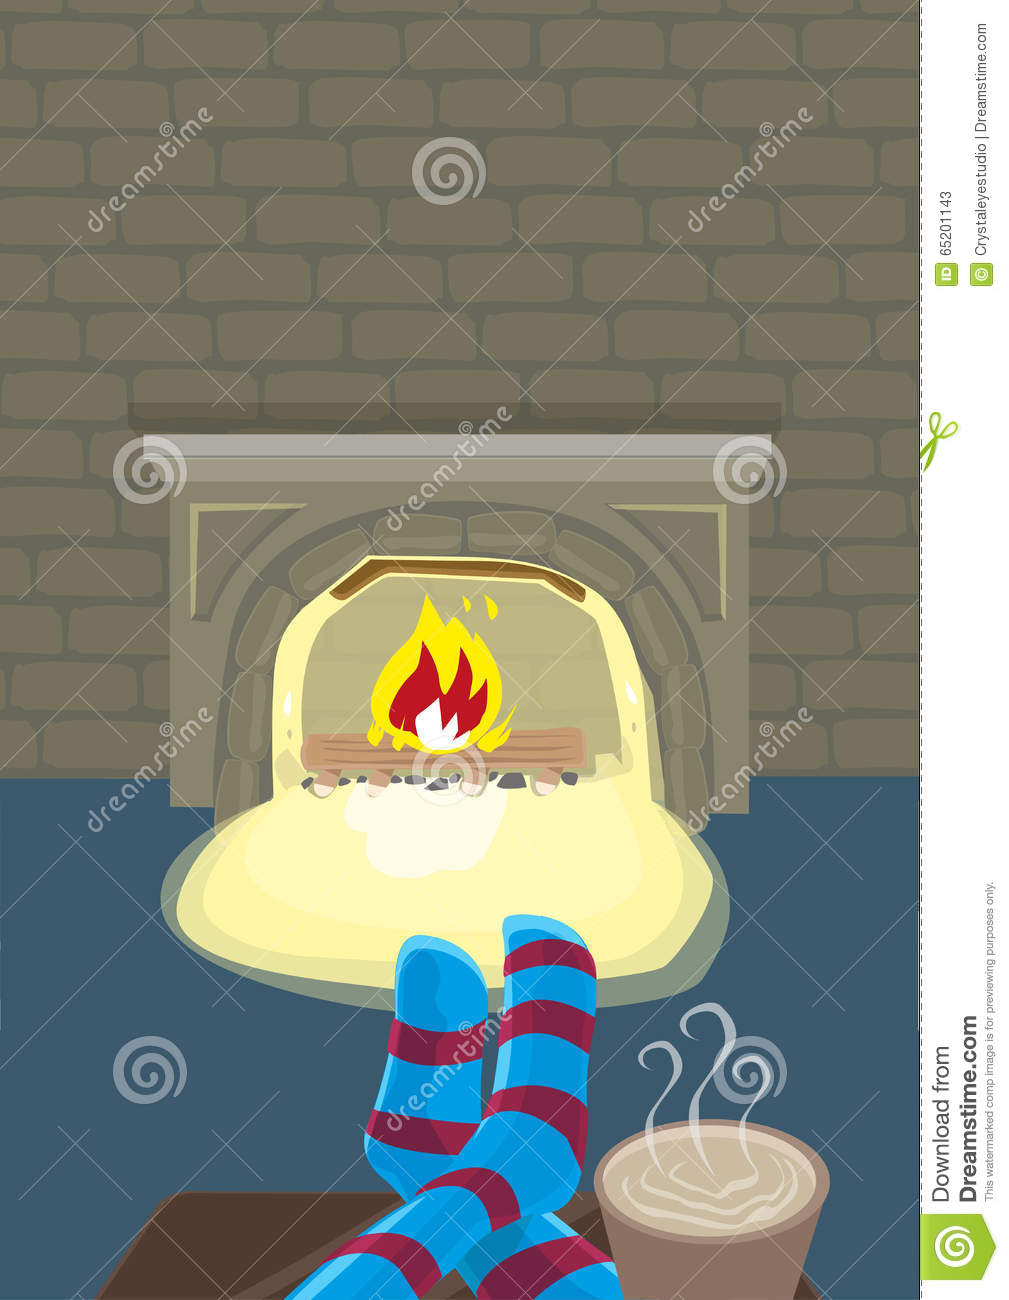 staying indoor with fireplace during winter season editable clip